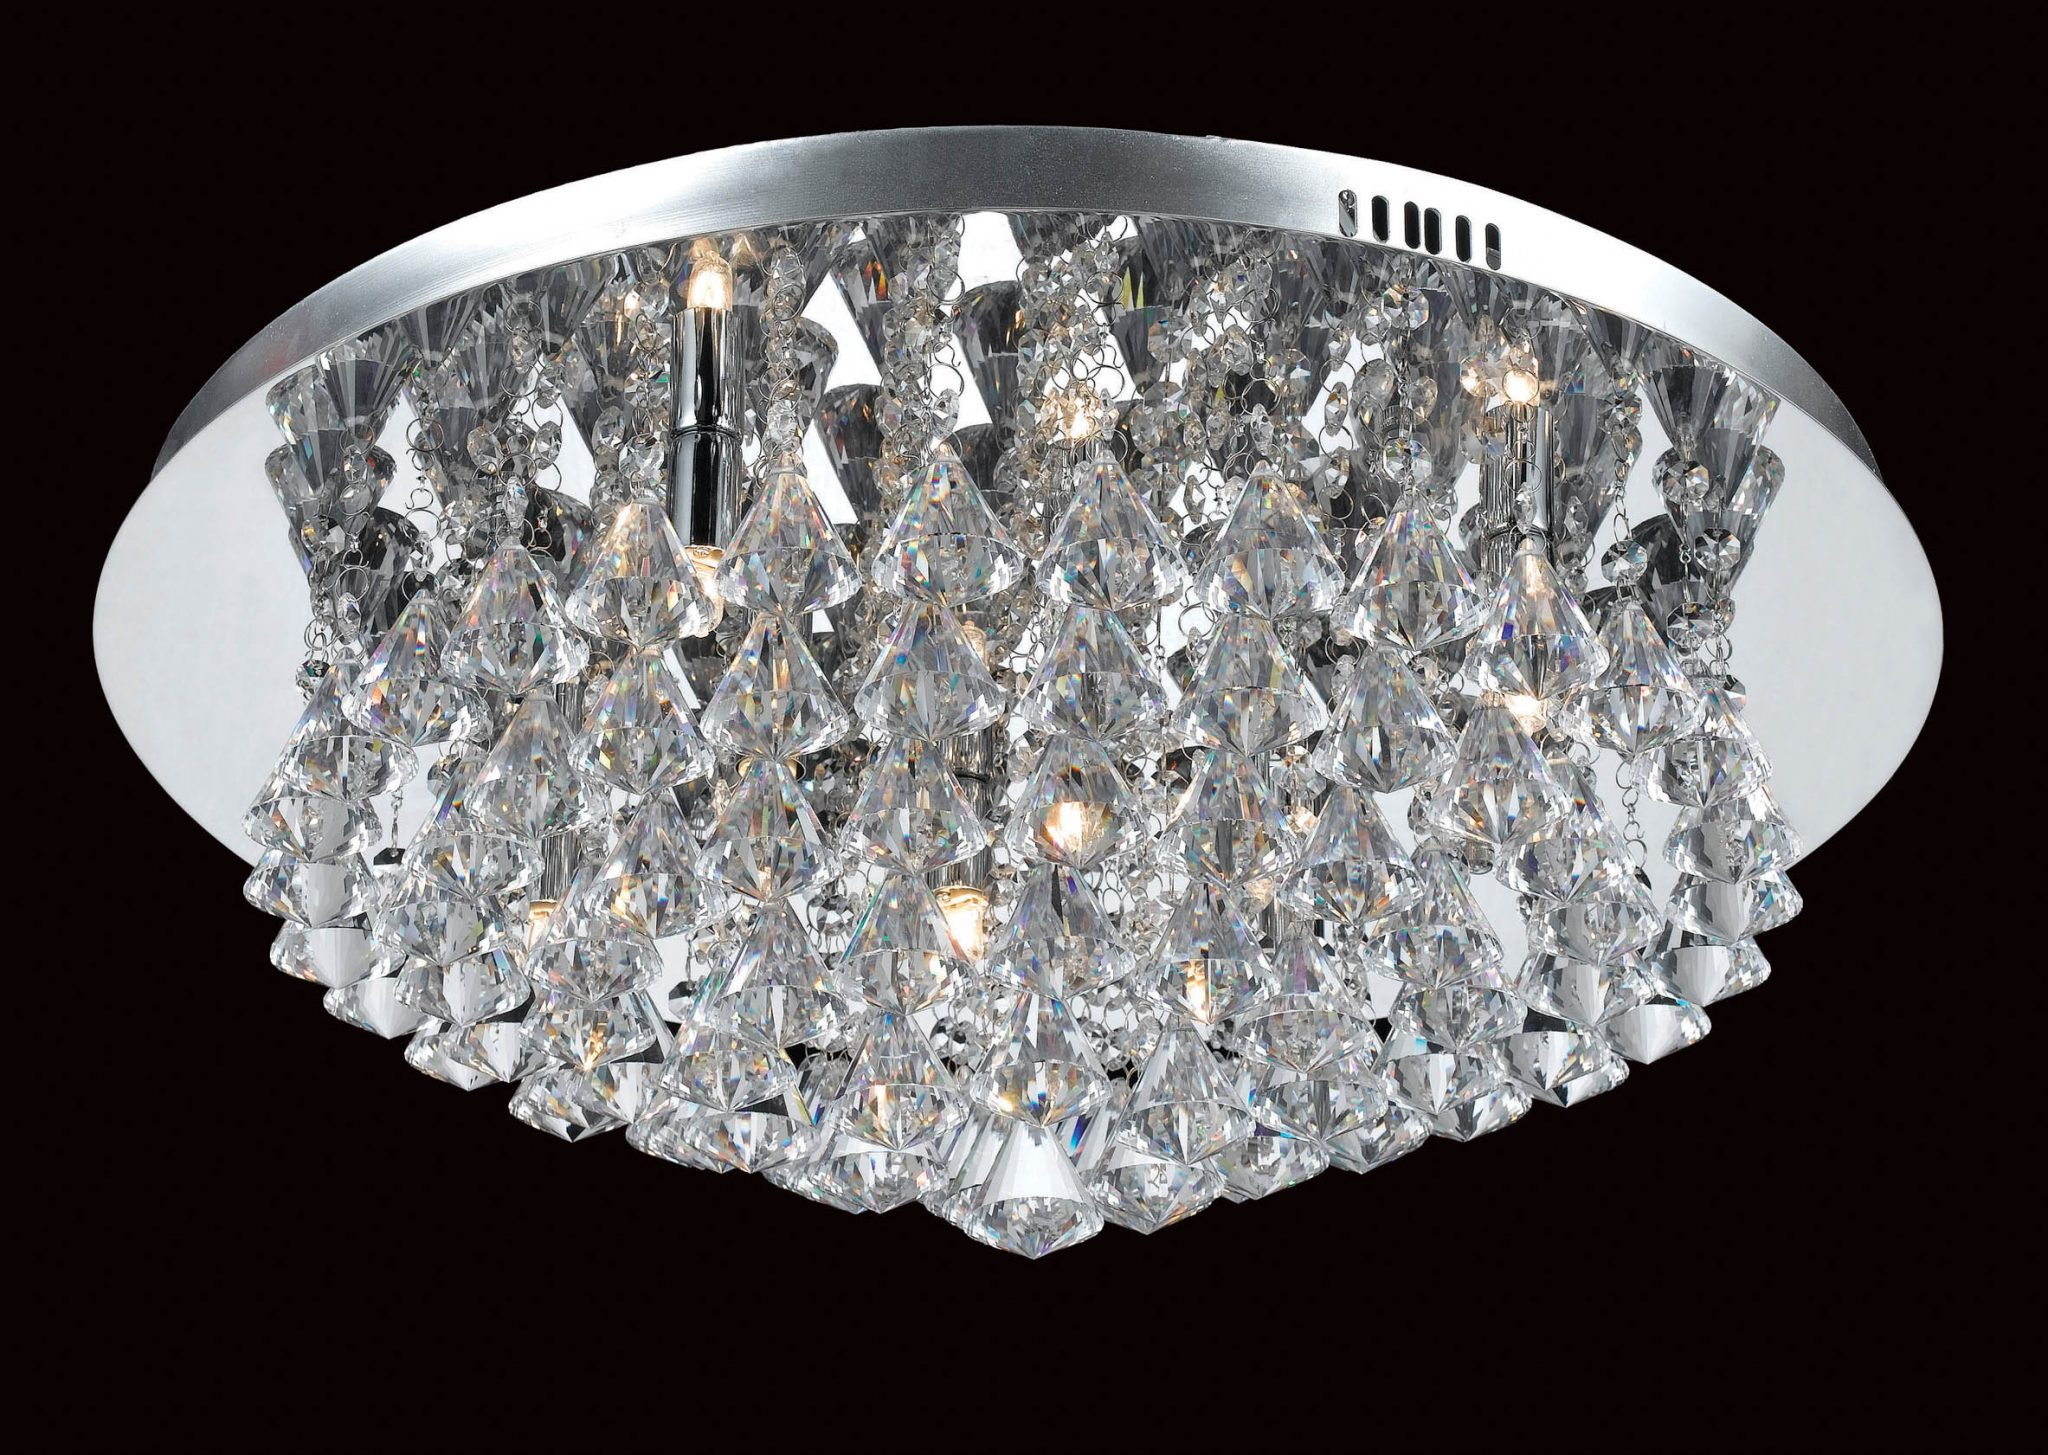 Impex CFH011025/08/CH Parma 8 light Low Ceiling Fitting, Chrome